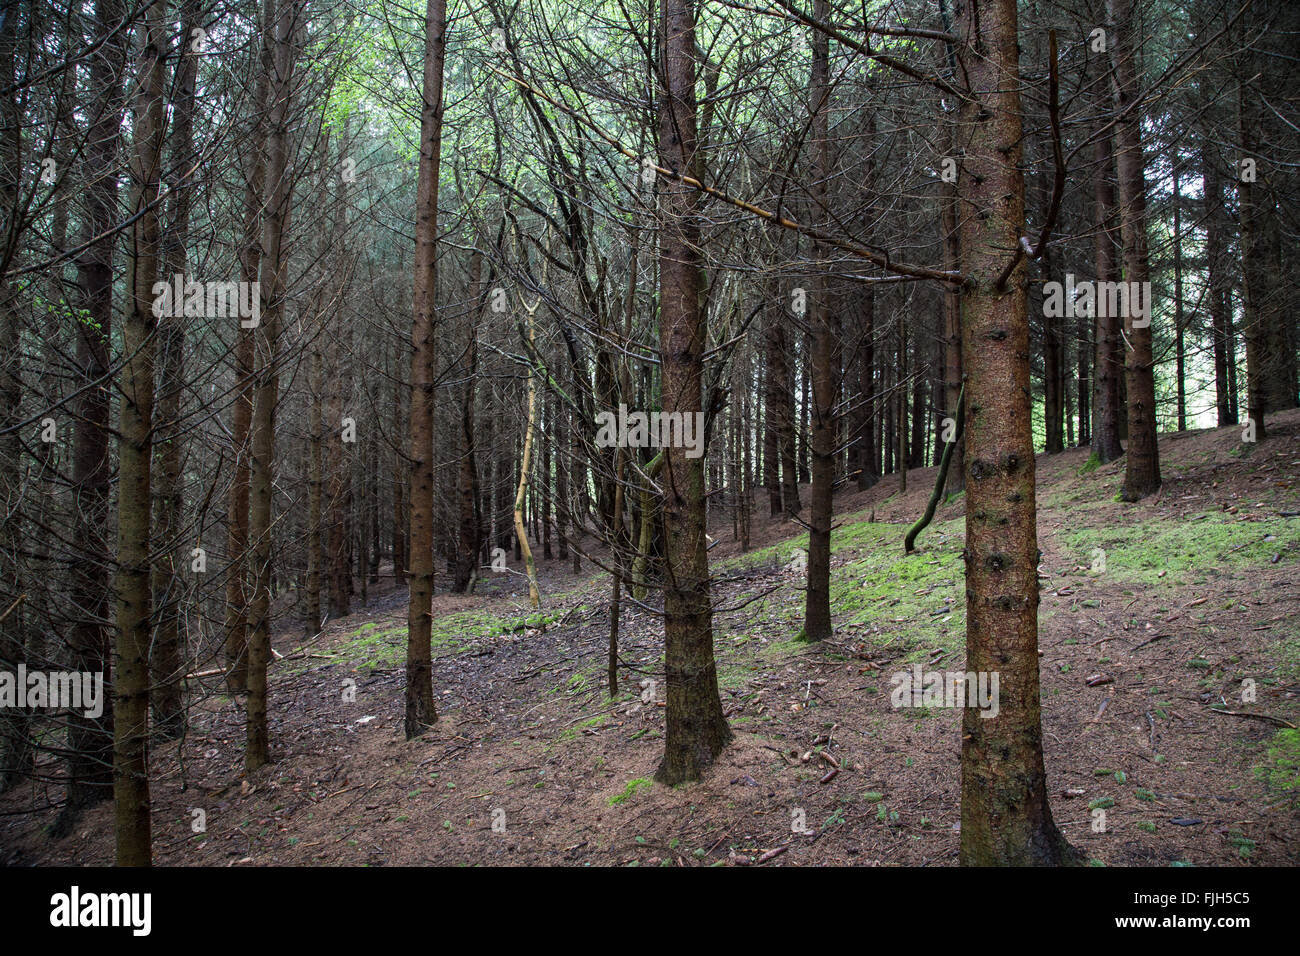 one bright green broadleaved tree within a dark conifer forest, speckles of greenery on the brown soil - Stock Image